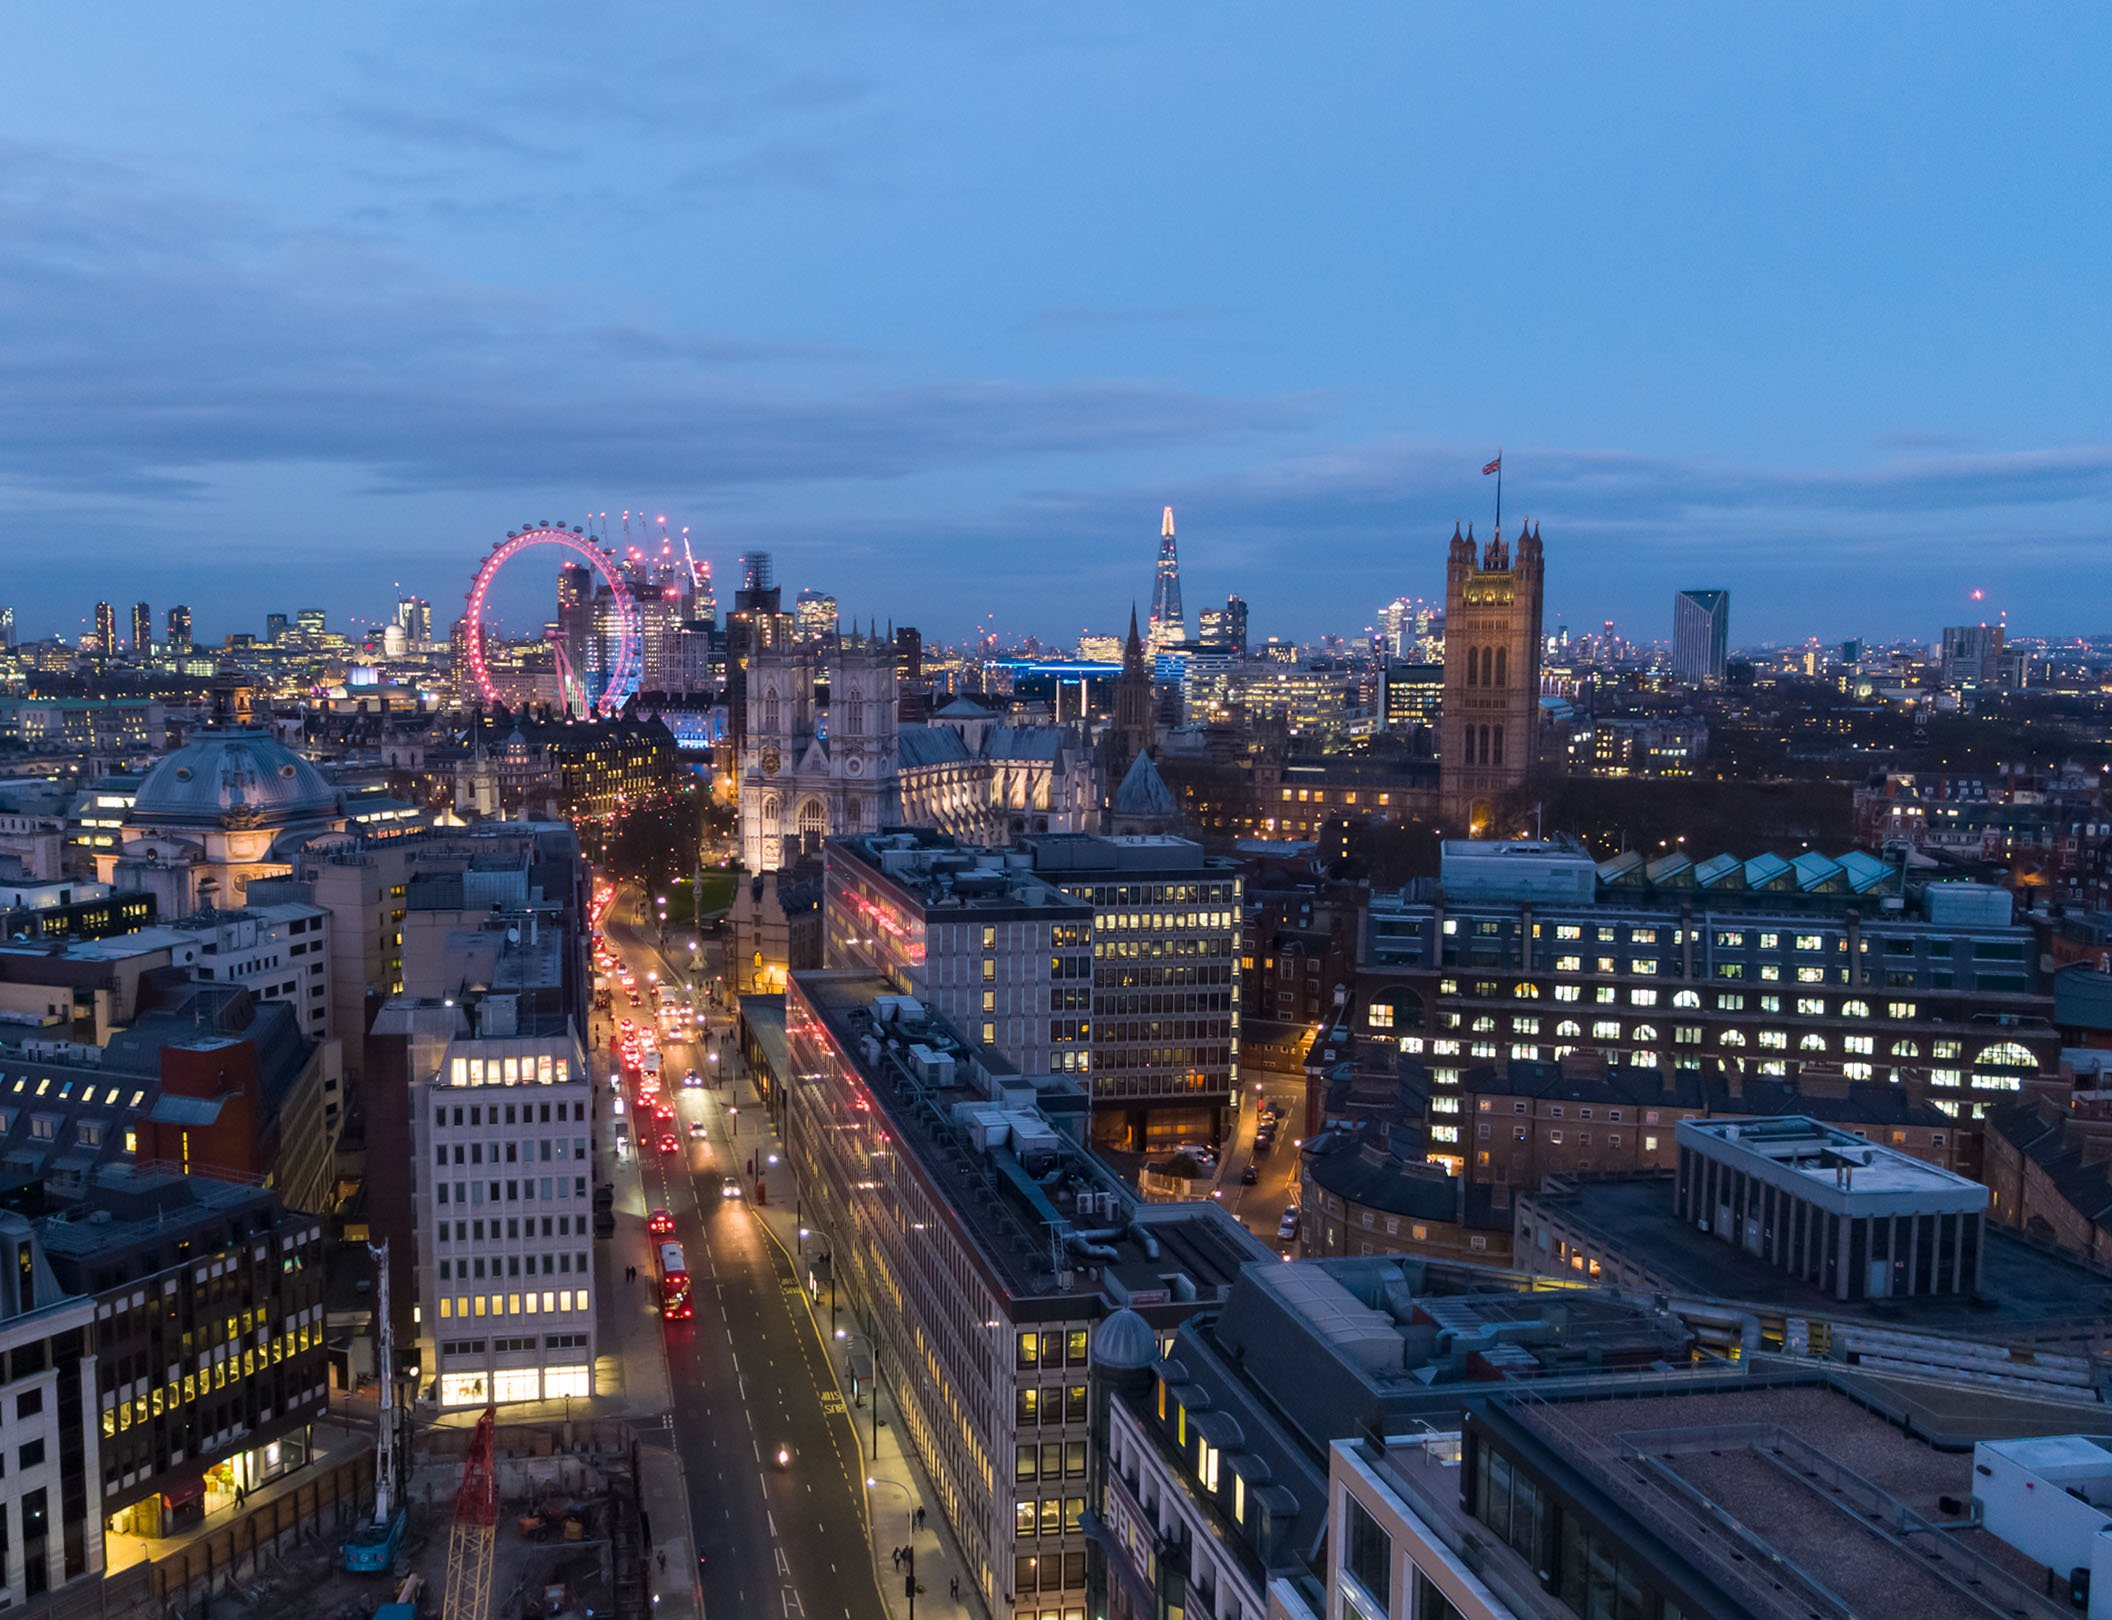 London skyline in the evening drone photograph